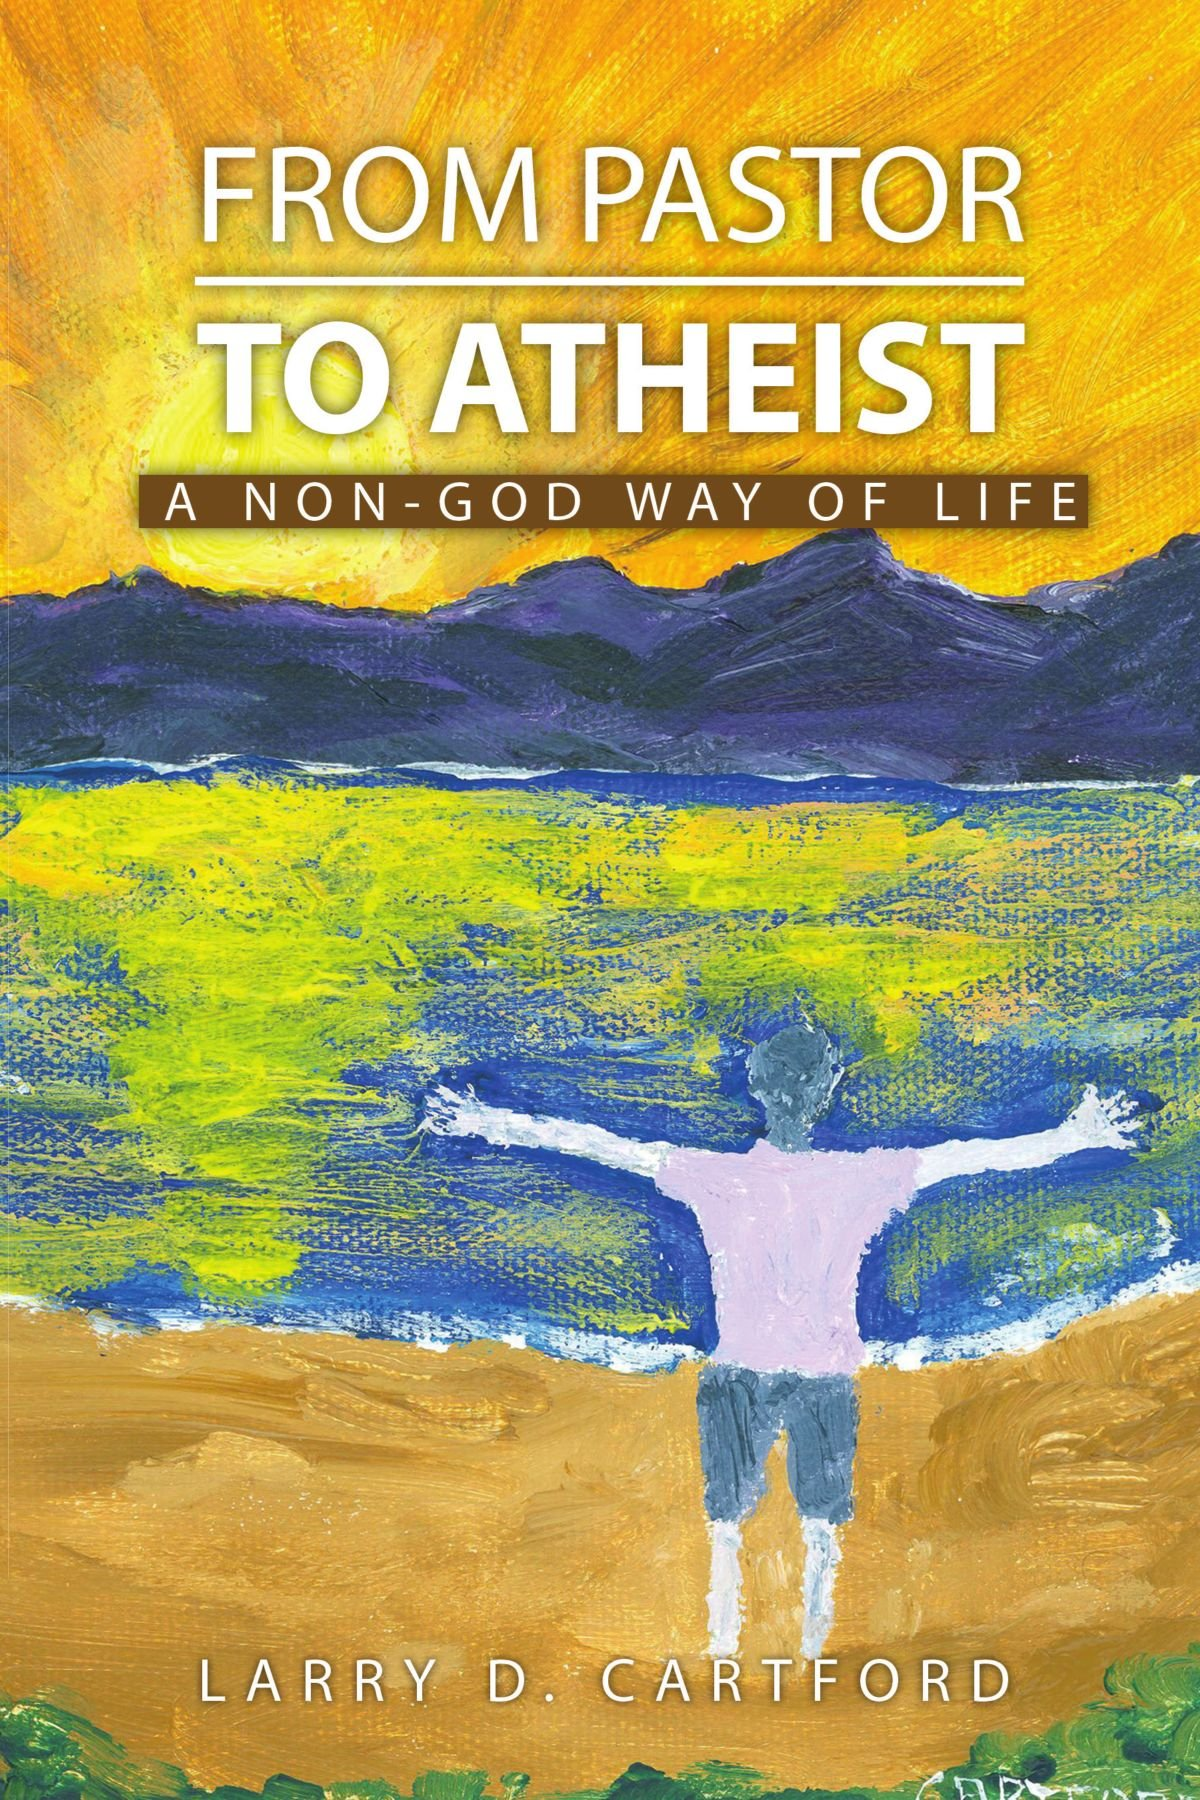 FROM PASTOR TO ATHEIST: A Non-god Way of Life: Larry Cartford:  9781450085830: Amazon.com: Books